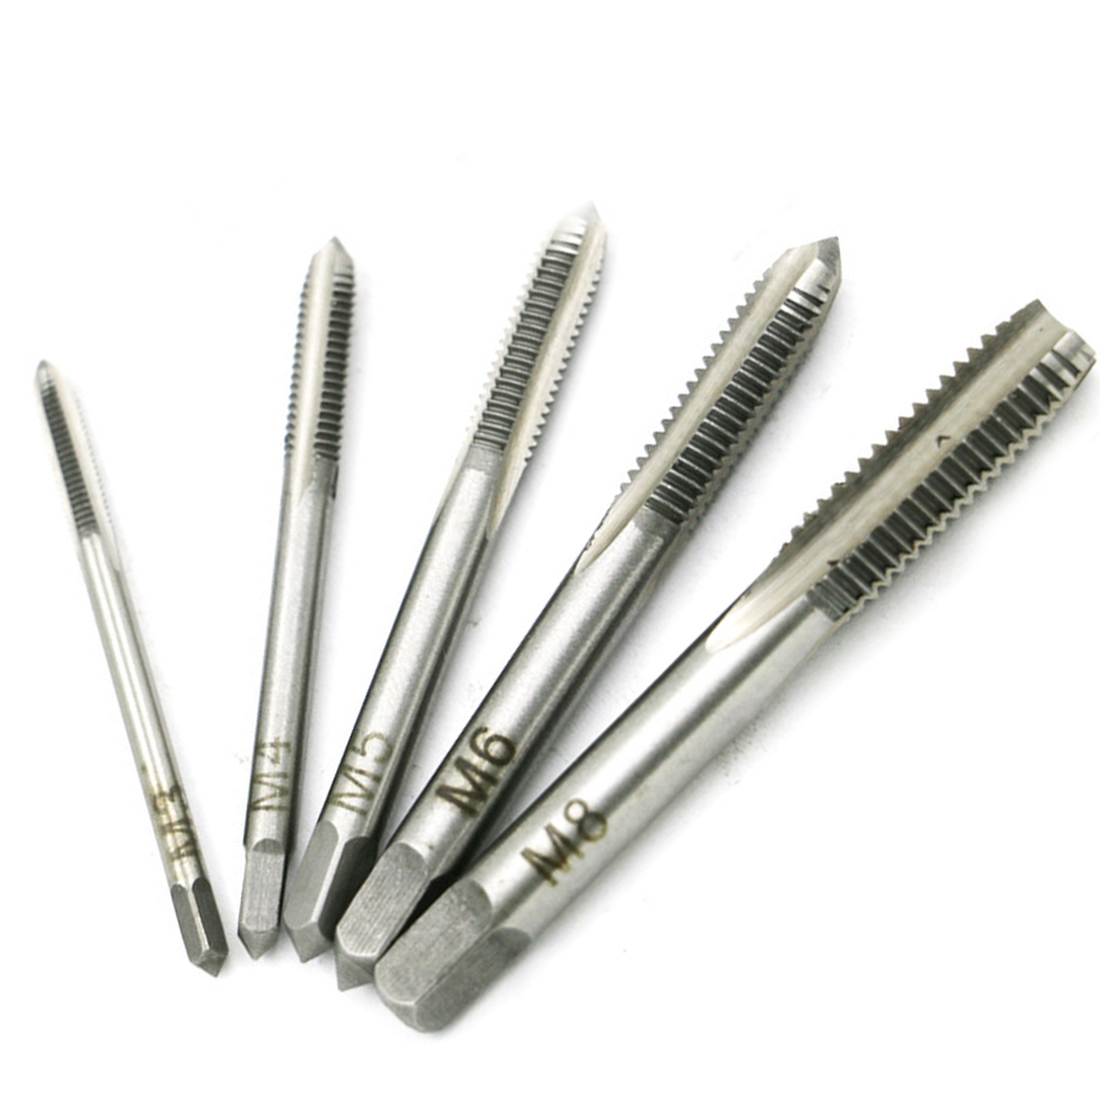 Drill Bit HSS M3 M4 M5 M6 M8 5PCS/Set Machine Spiral Point Straight Fluted Screw Thread Hand Tap Drill Screw Moving